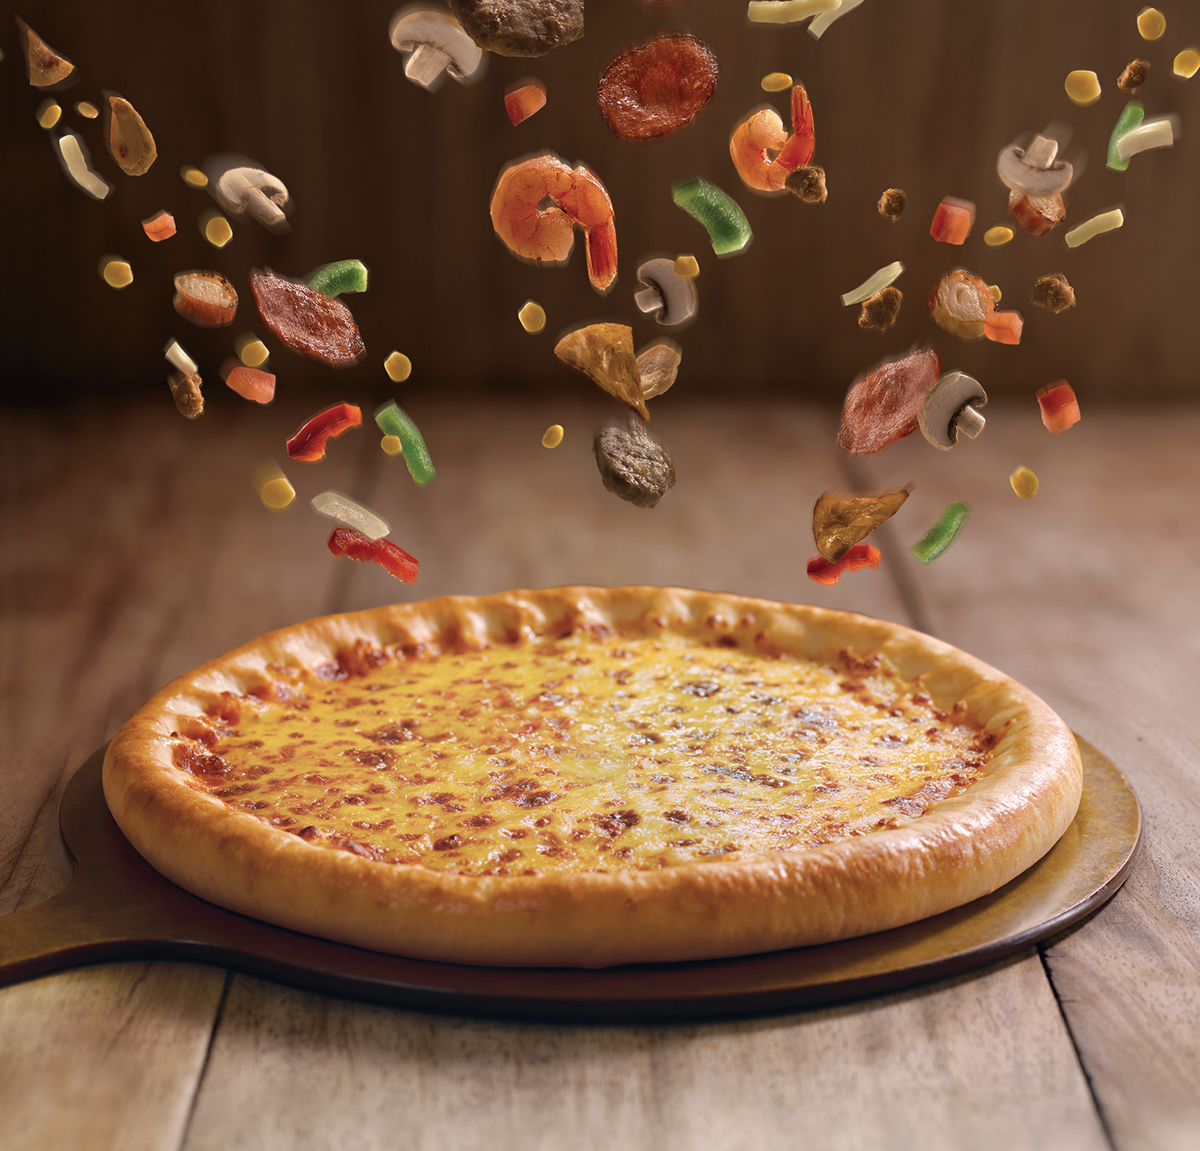 stp analysis pizza hut On november 19th 2014, pizza hut started to go through the biggest change in its business since it started over 56 years ago the rebranding effort consisted of changes in almost all aspects of pizza hut's identity.